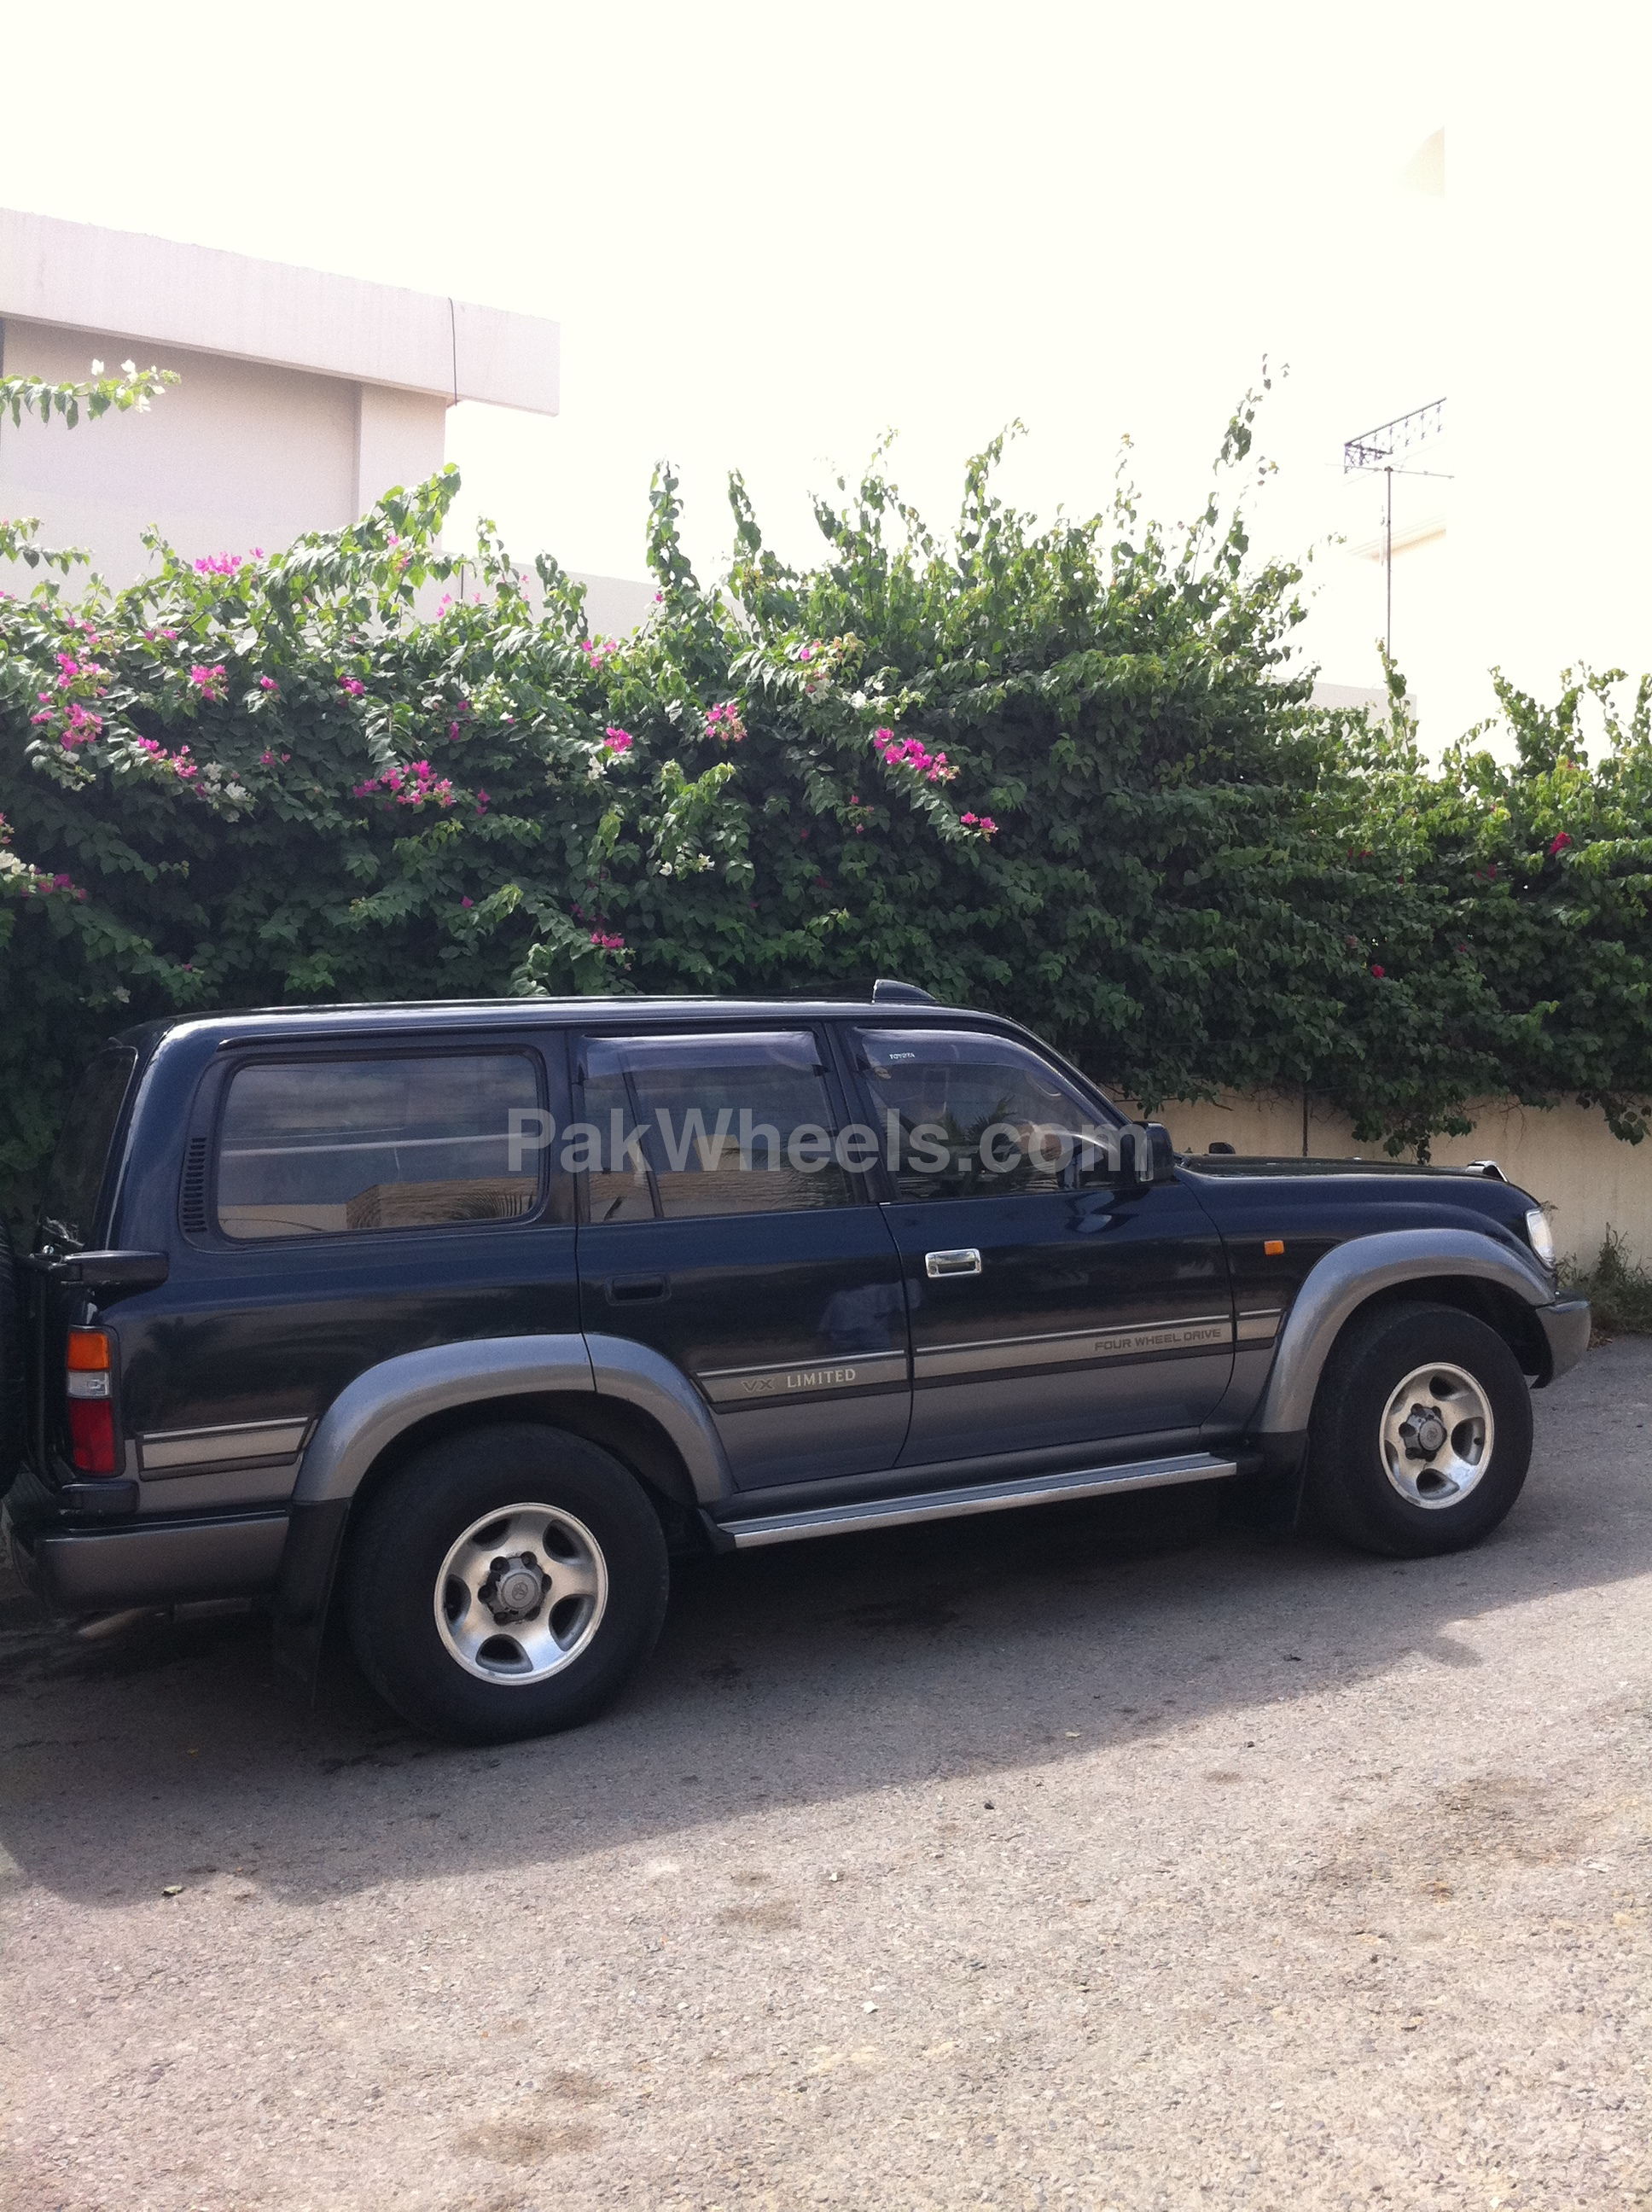 toyota land cruiser gx 1996 for sale in karachi pakwheels. Black Bedroom Furniture Sets. Home Design Ideas